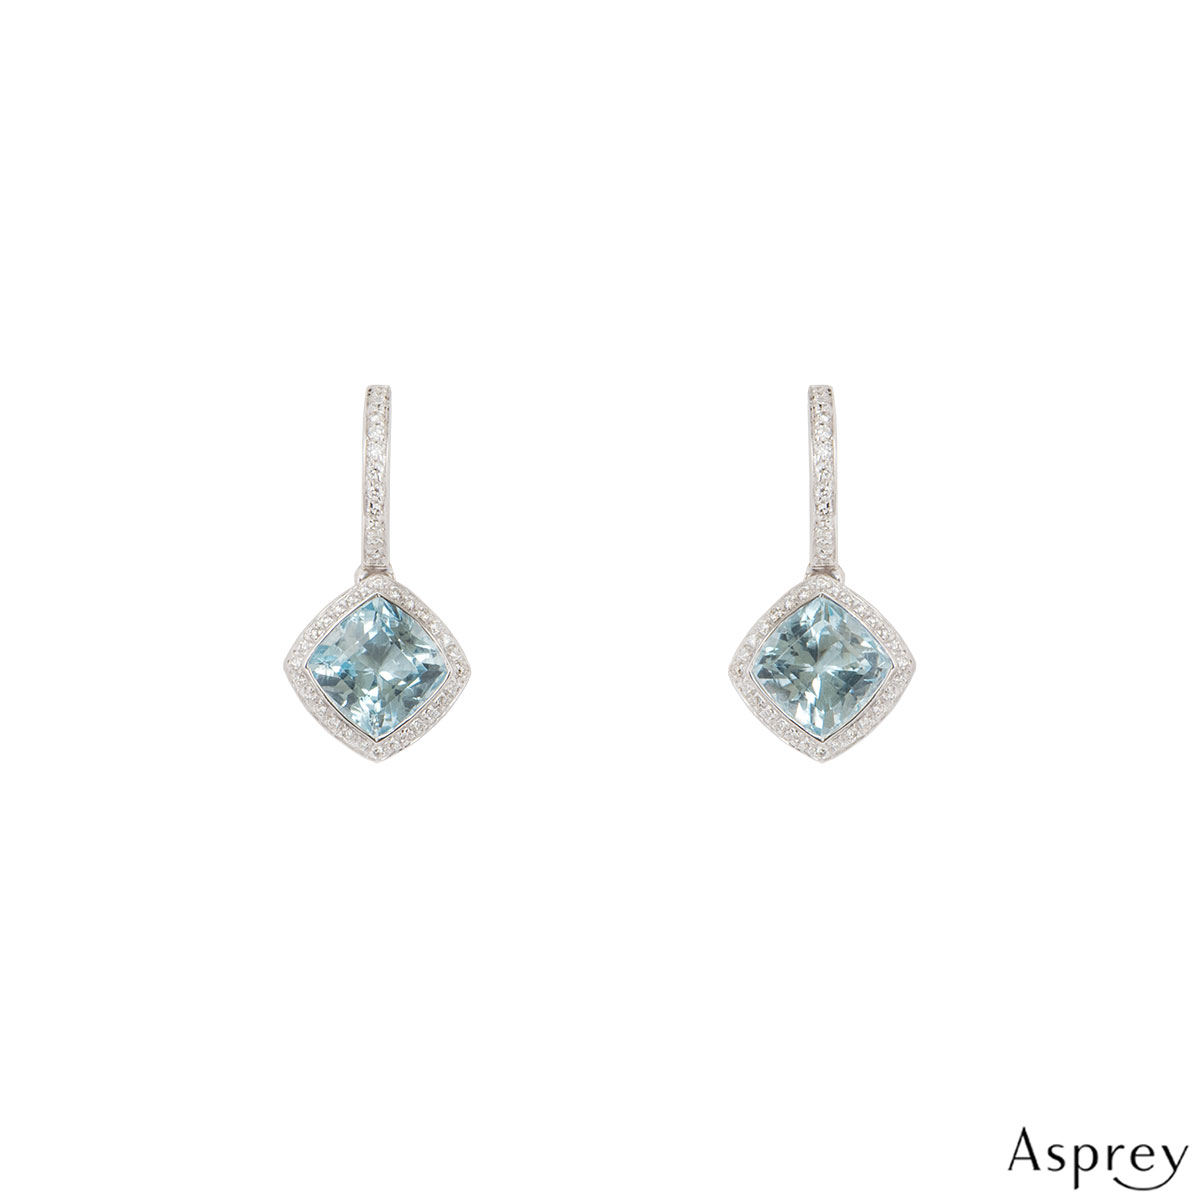 Asprey White Gold Diamond And Blue Topaz Earrings